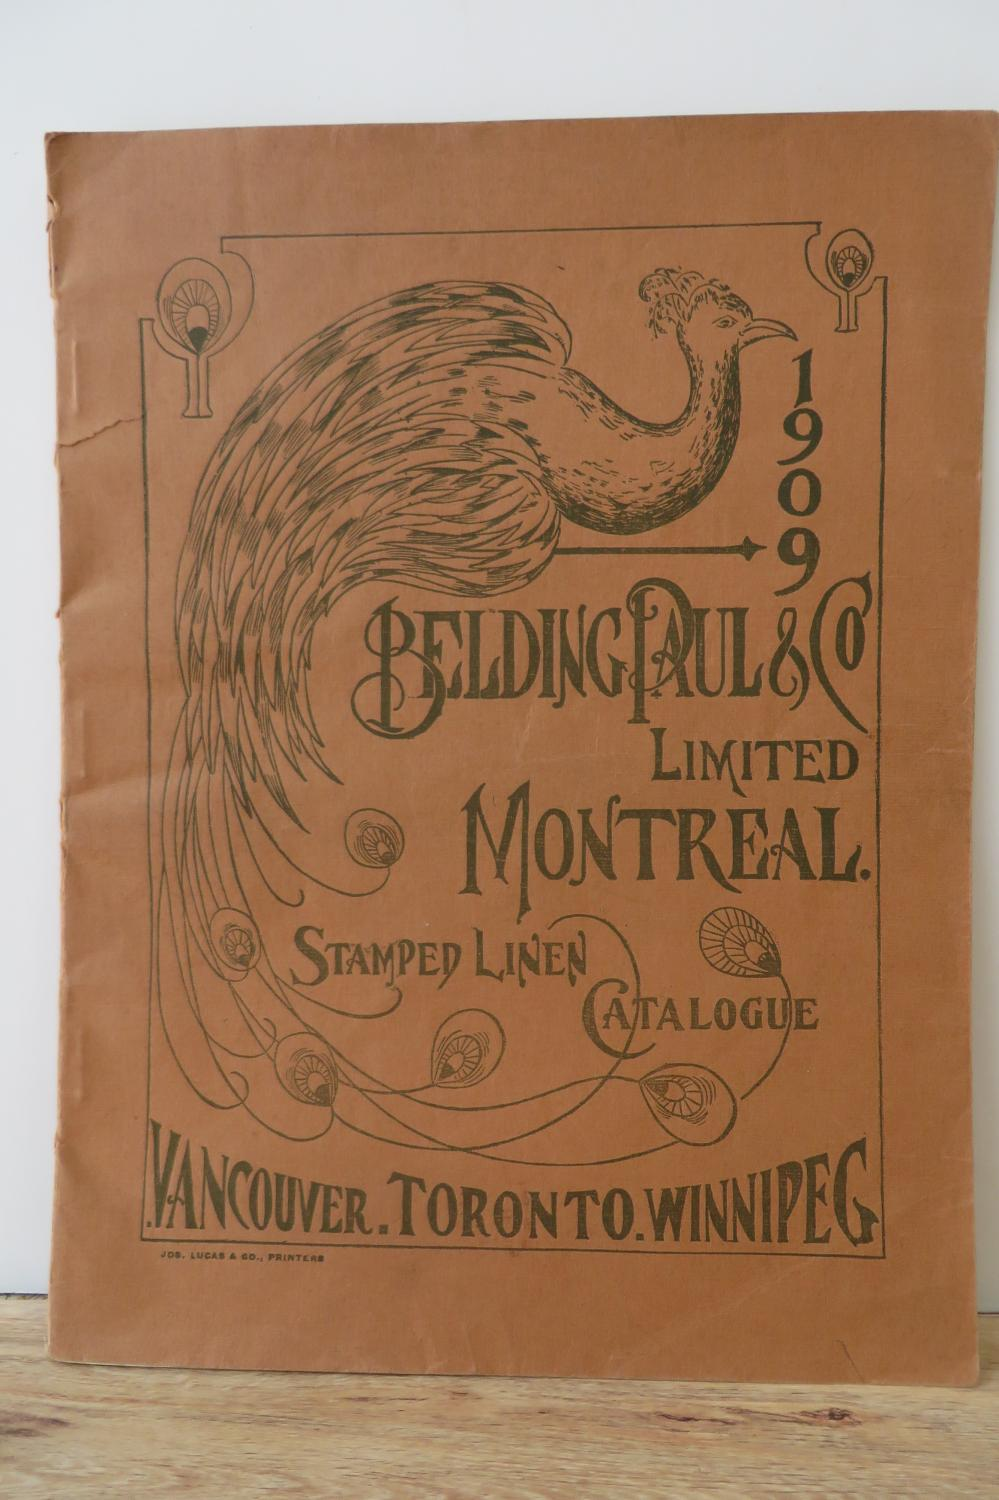 1909 Belding, Paul & Co. Limited Montreal Stamped Linen Catalogue